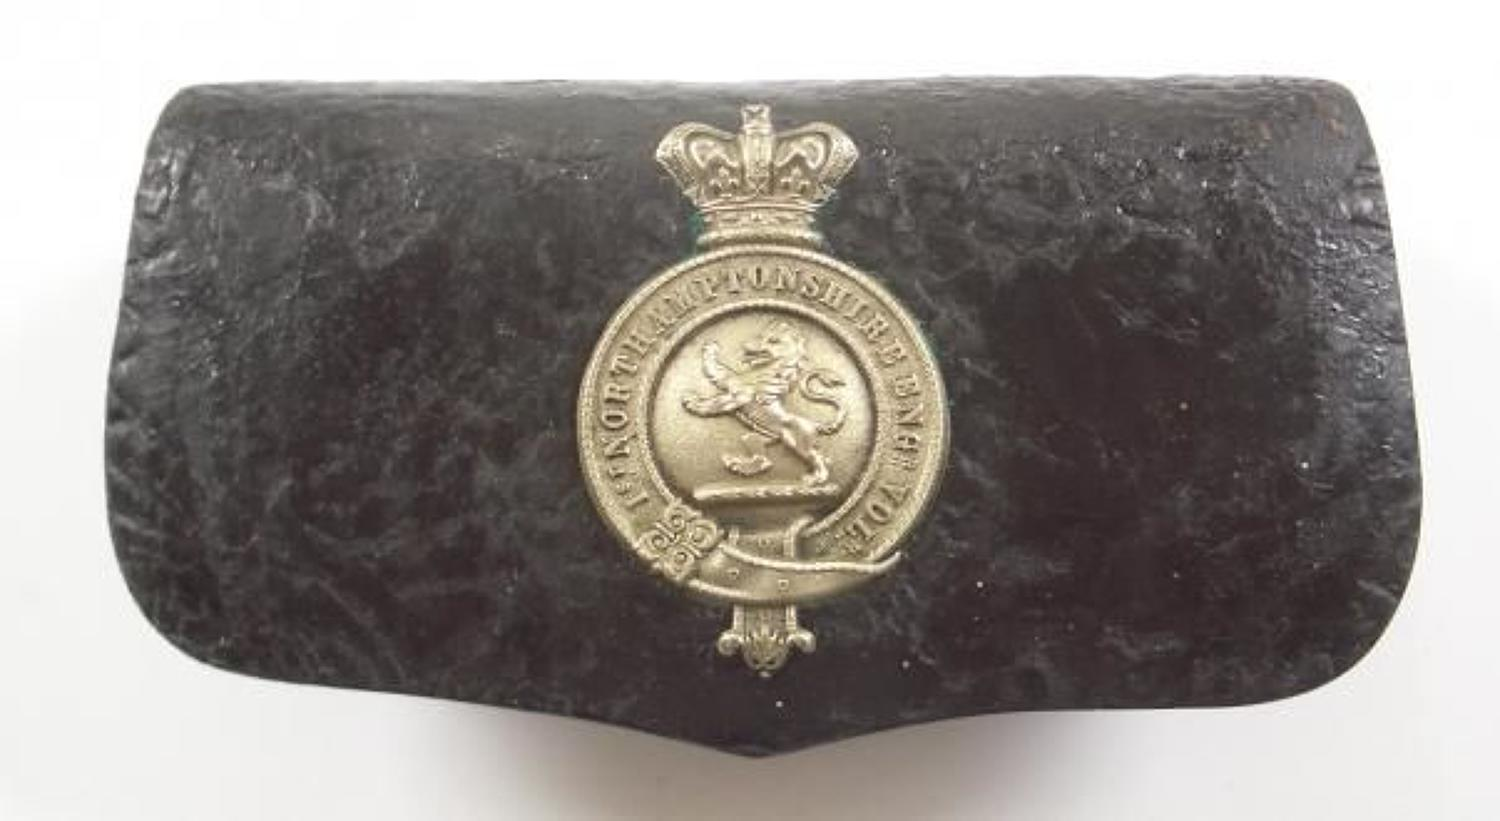 1st Northamptonshire Engineer Volunteers Victorian Officer's pouch